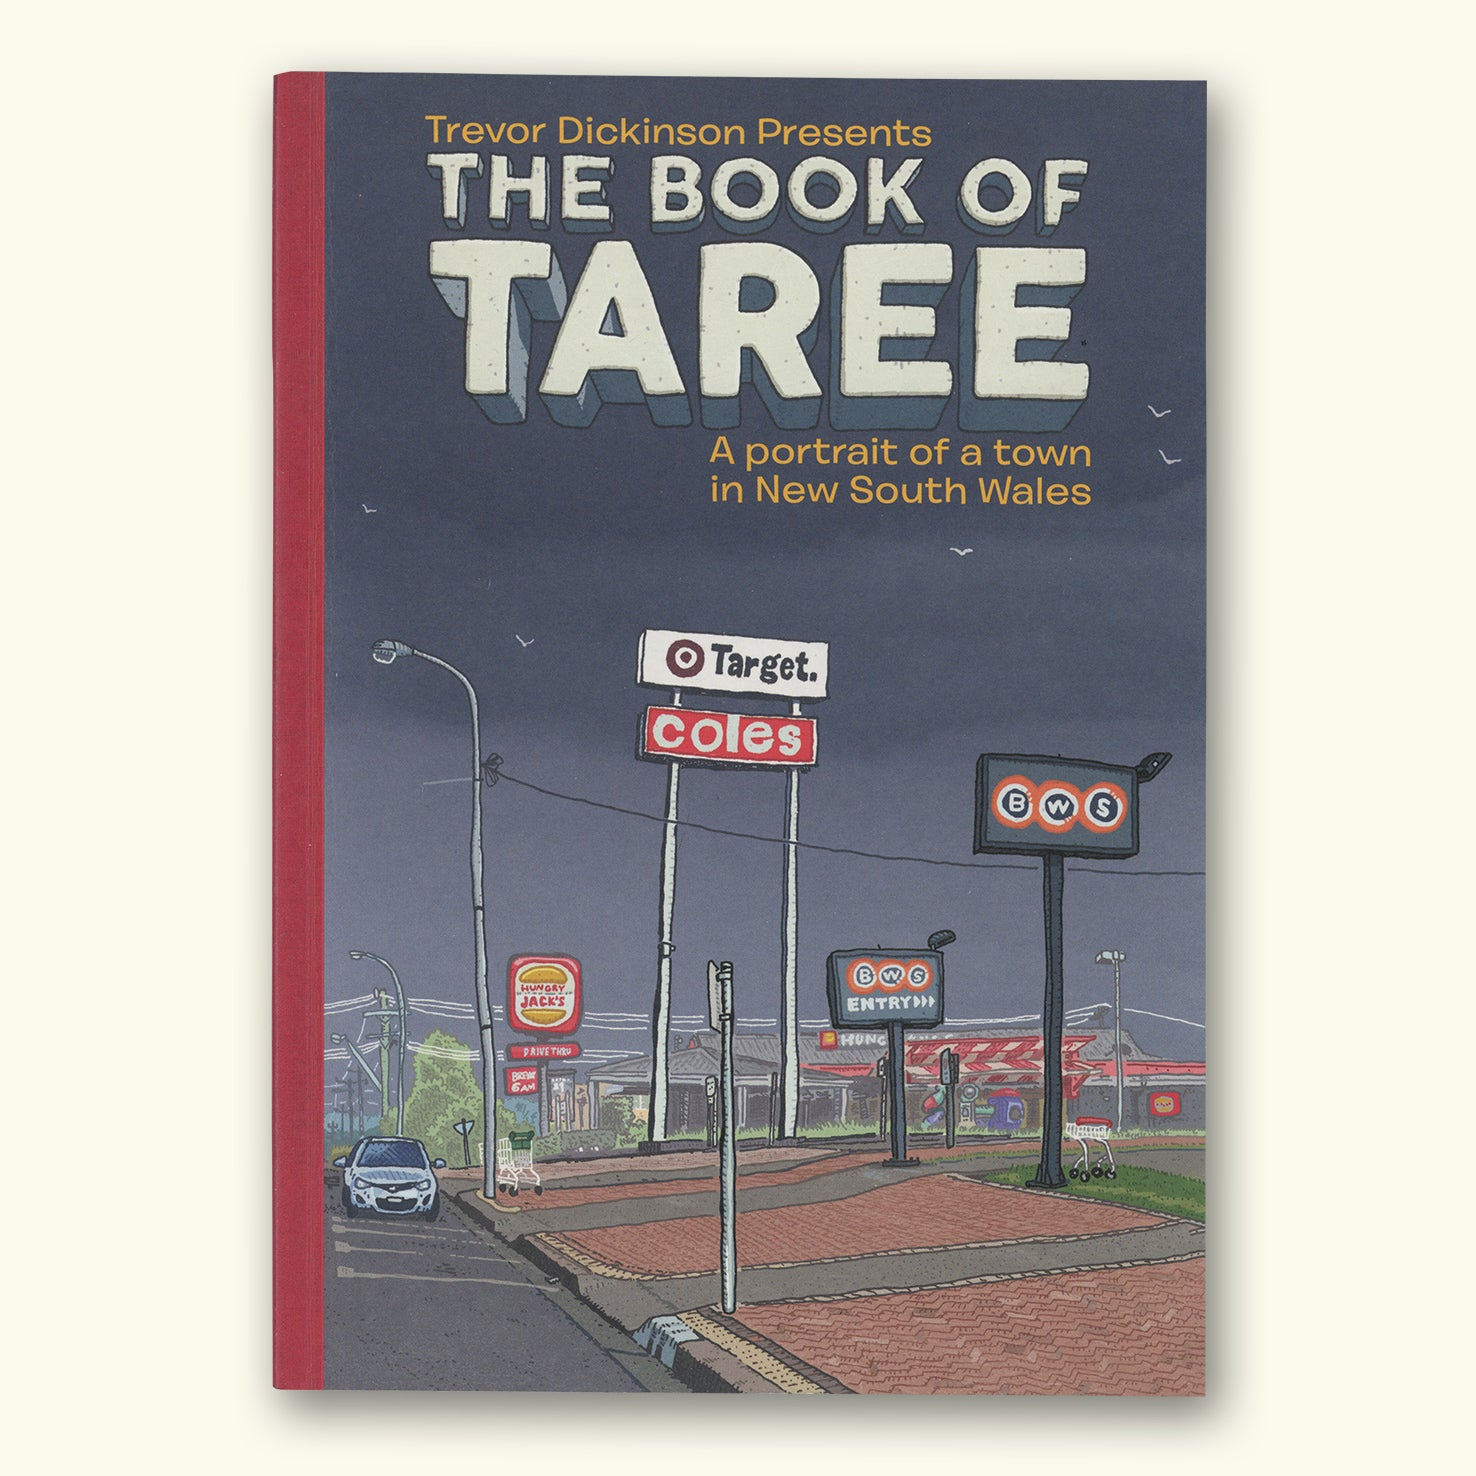 Image of The Book of Taree